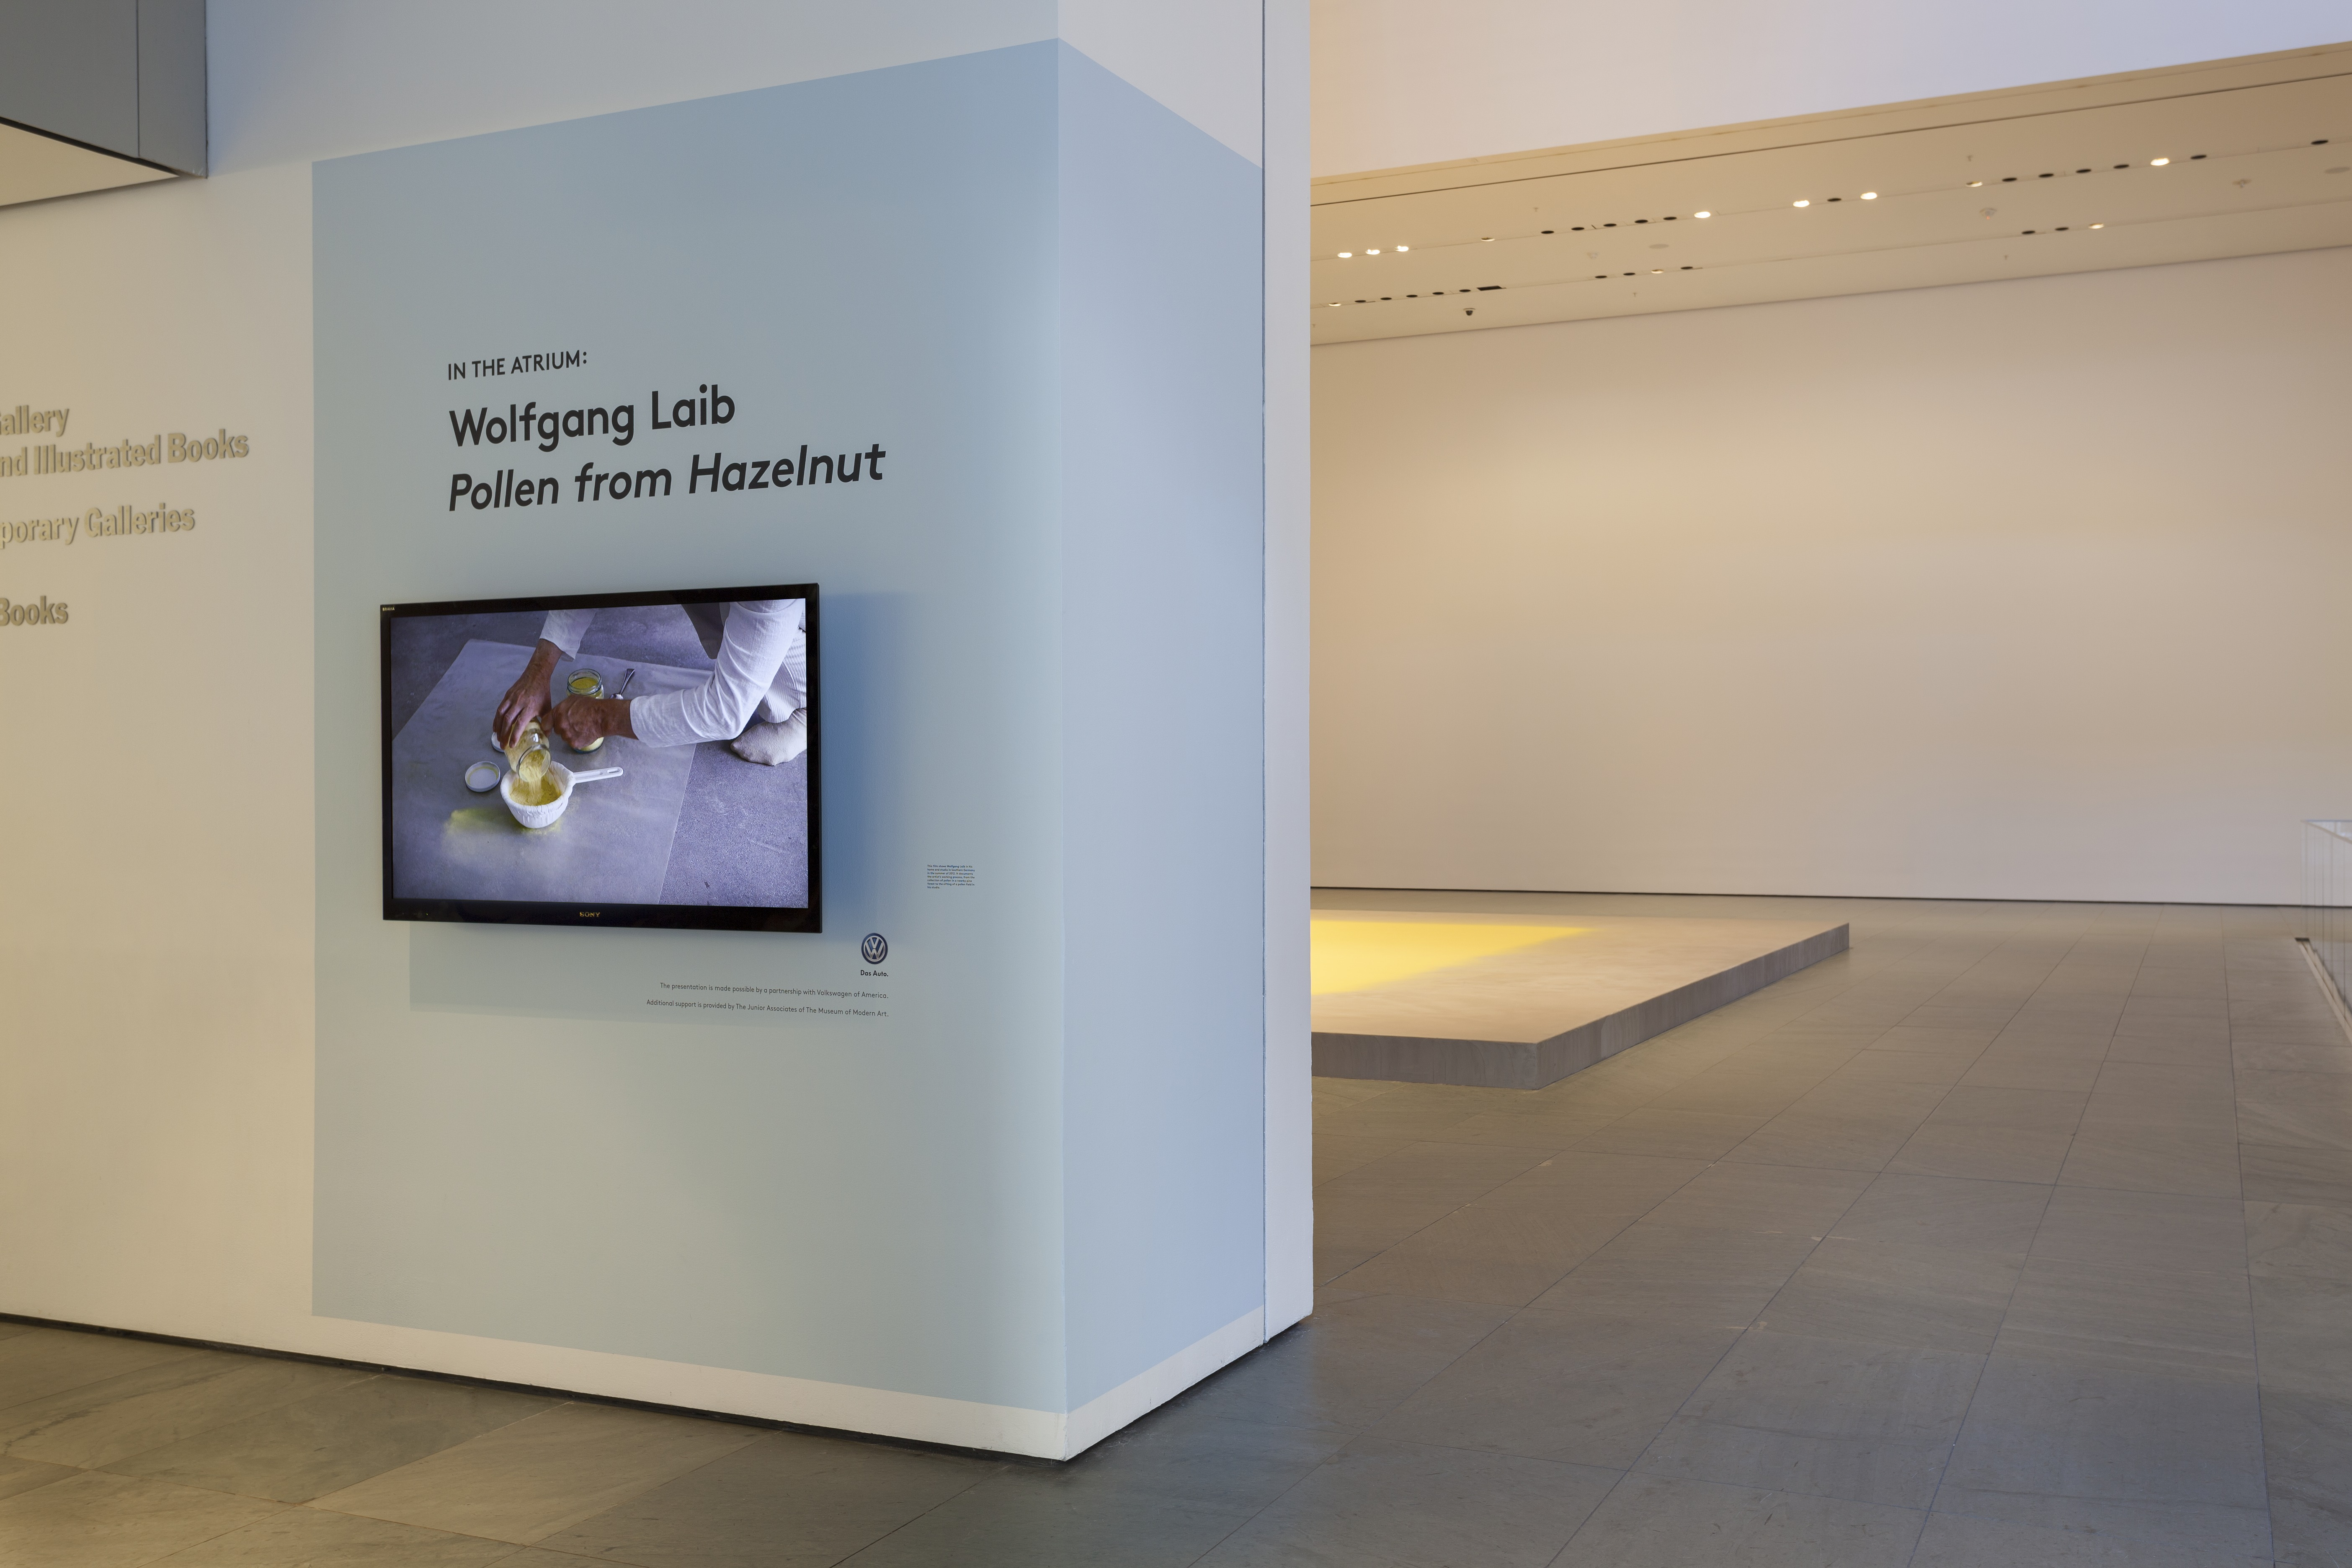 wolfgang laibs installation at the moma Museum of modern art yordanka 12 contemporary artists wolfgang laib's installation at the moma: pollen from hazelnut from january 23 to monday 11.